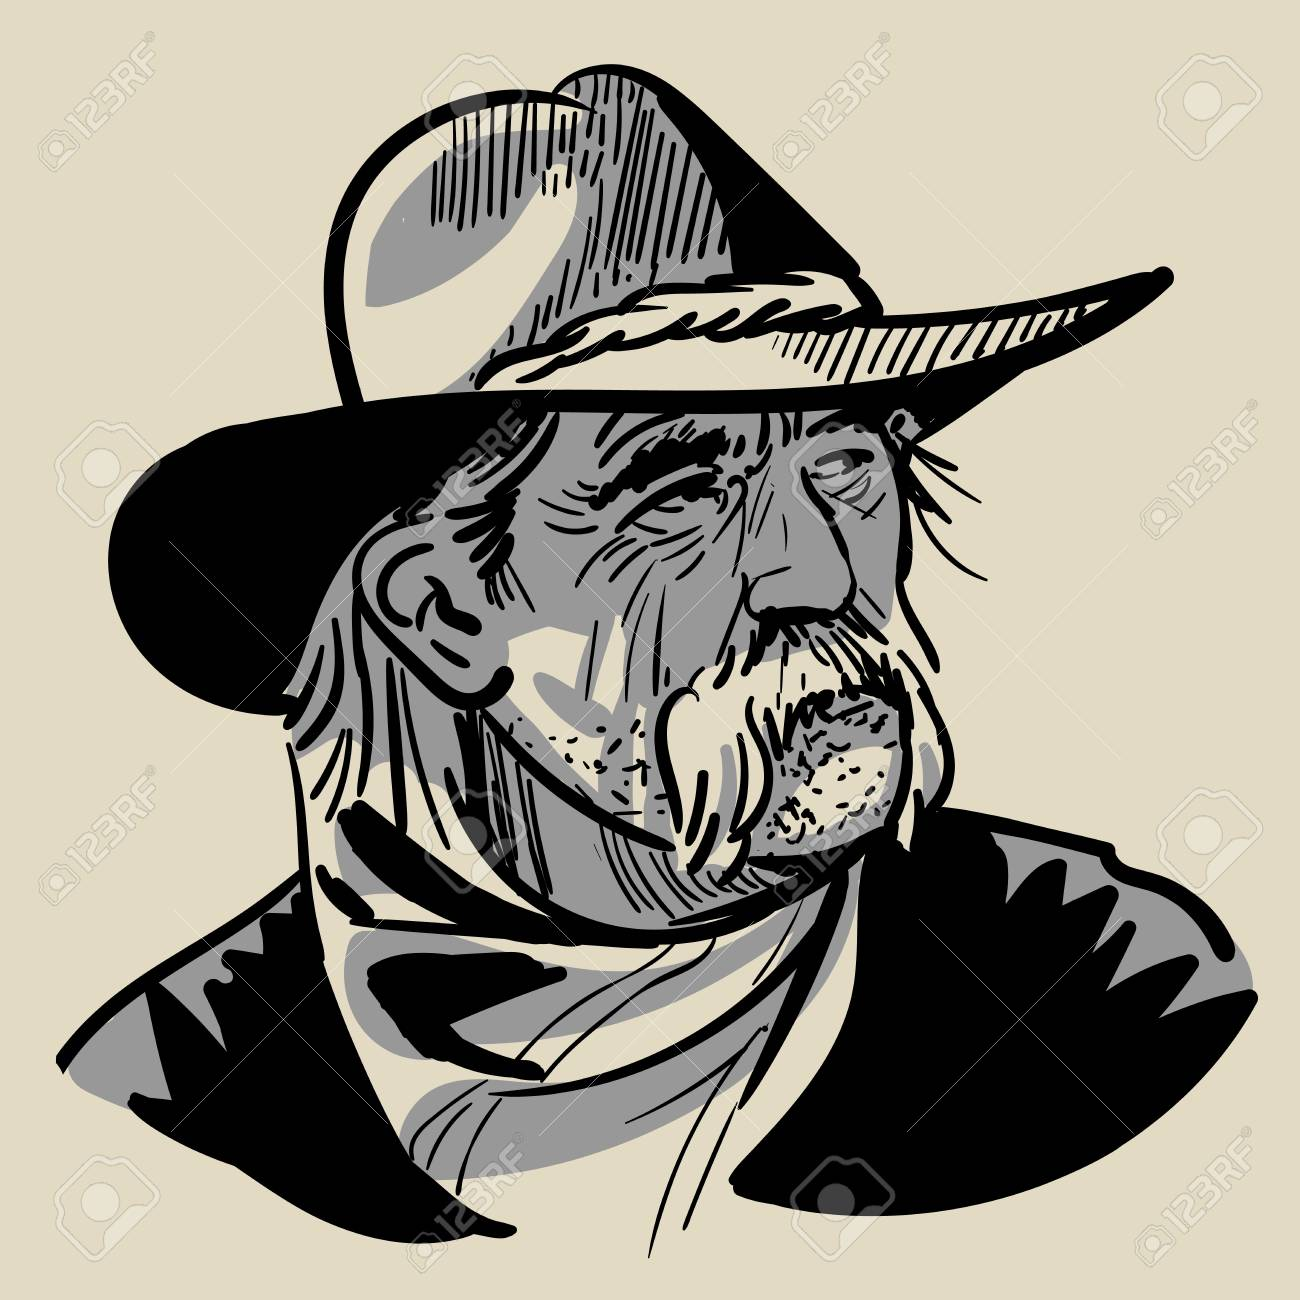 fdbee0608ec Old Cowboy with a hat. Portrait. Digital Sketch Hand Drawing Vector.  Illustration.